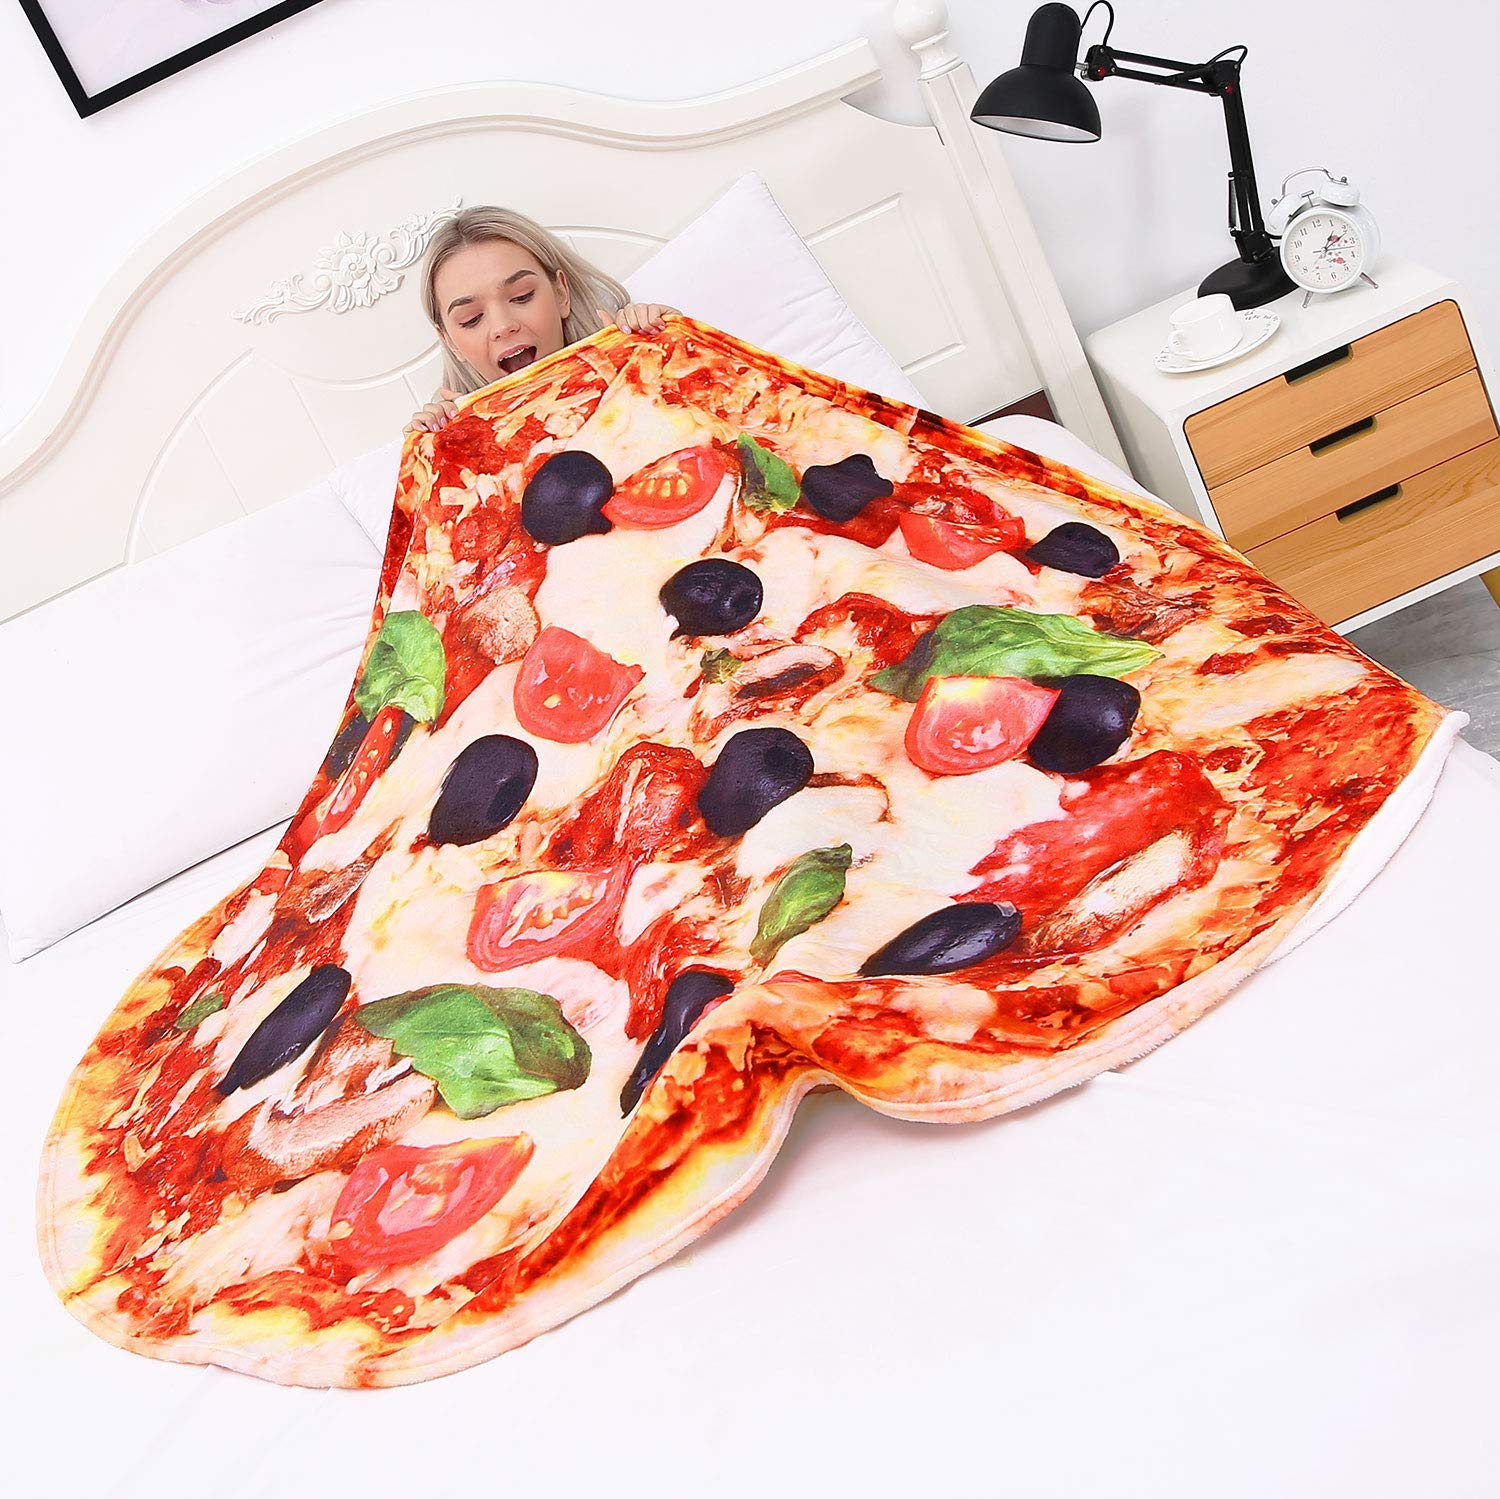 CASOFU Pizza Blanket Giant Pizza Throw Blanket Brown Black, 71 inches Novelty Pizza Blanket for Your Family Soft and Comfortable Flannel Pizza Blanket for Kids.